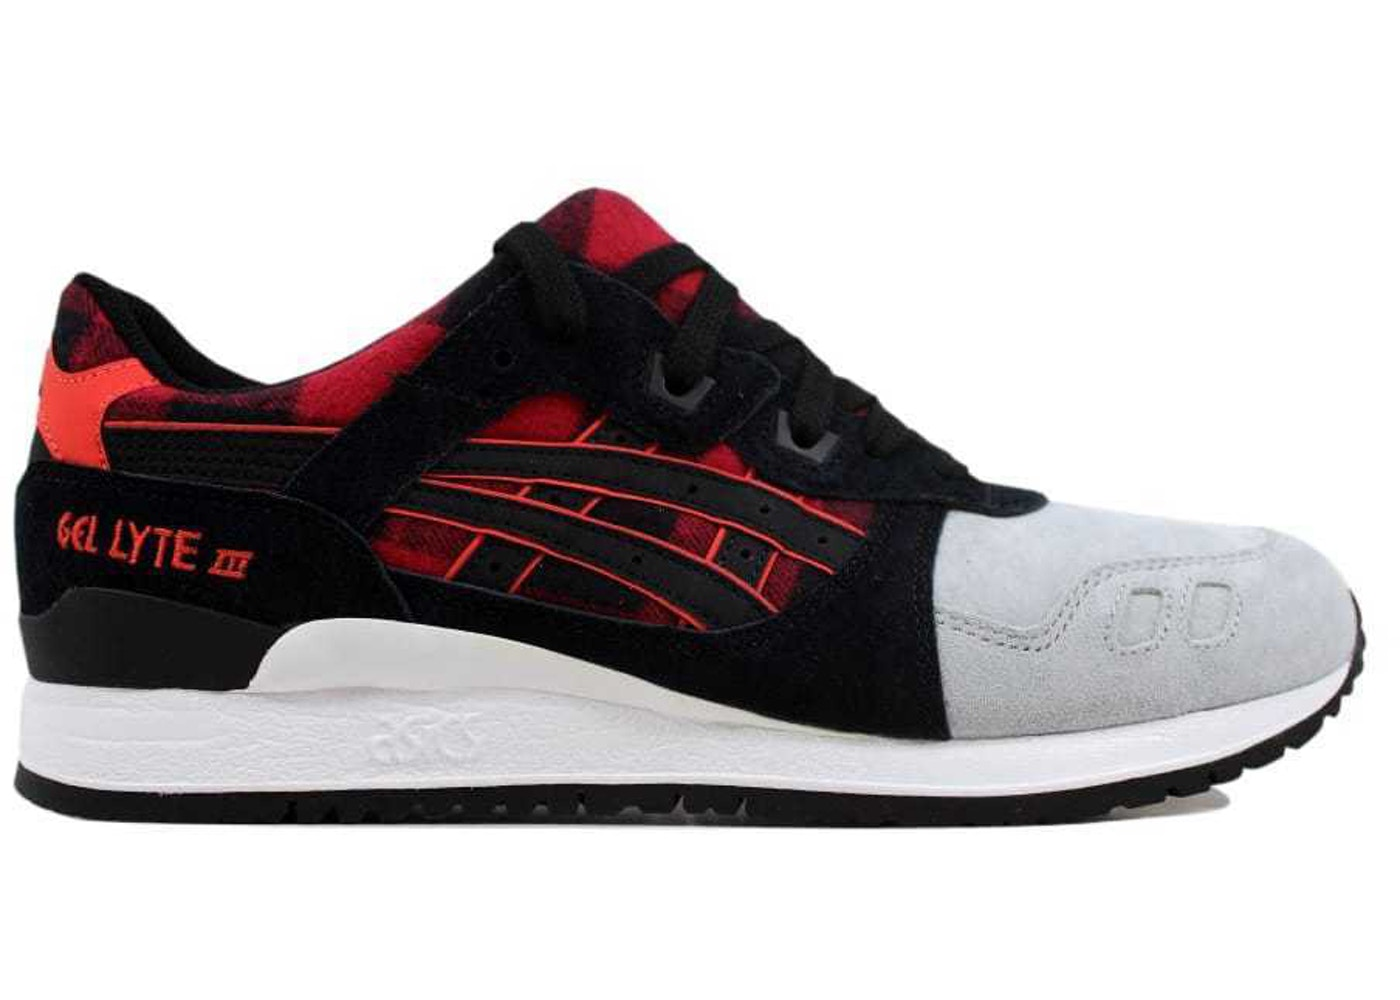 super cute 6d000 36184 Asics Gel Lyte III 3 Red Black - H6Y0L-2490